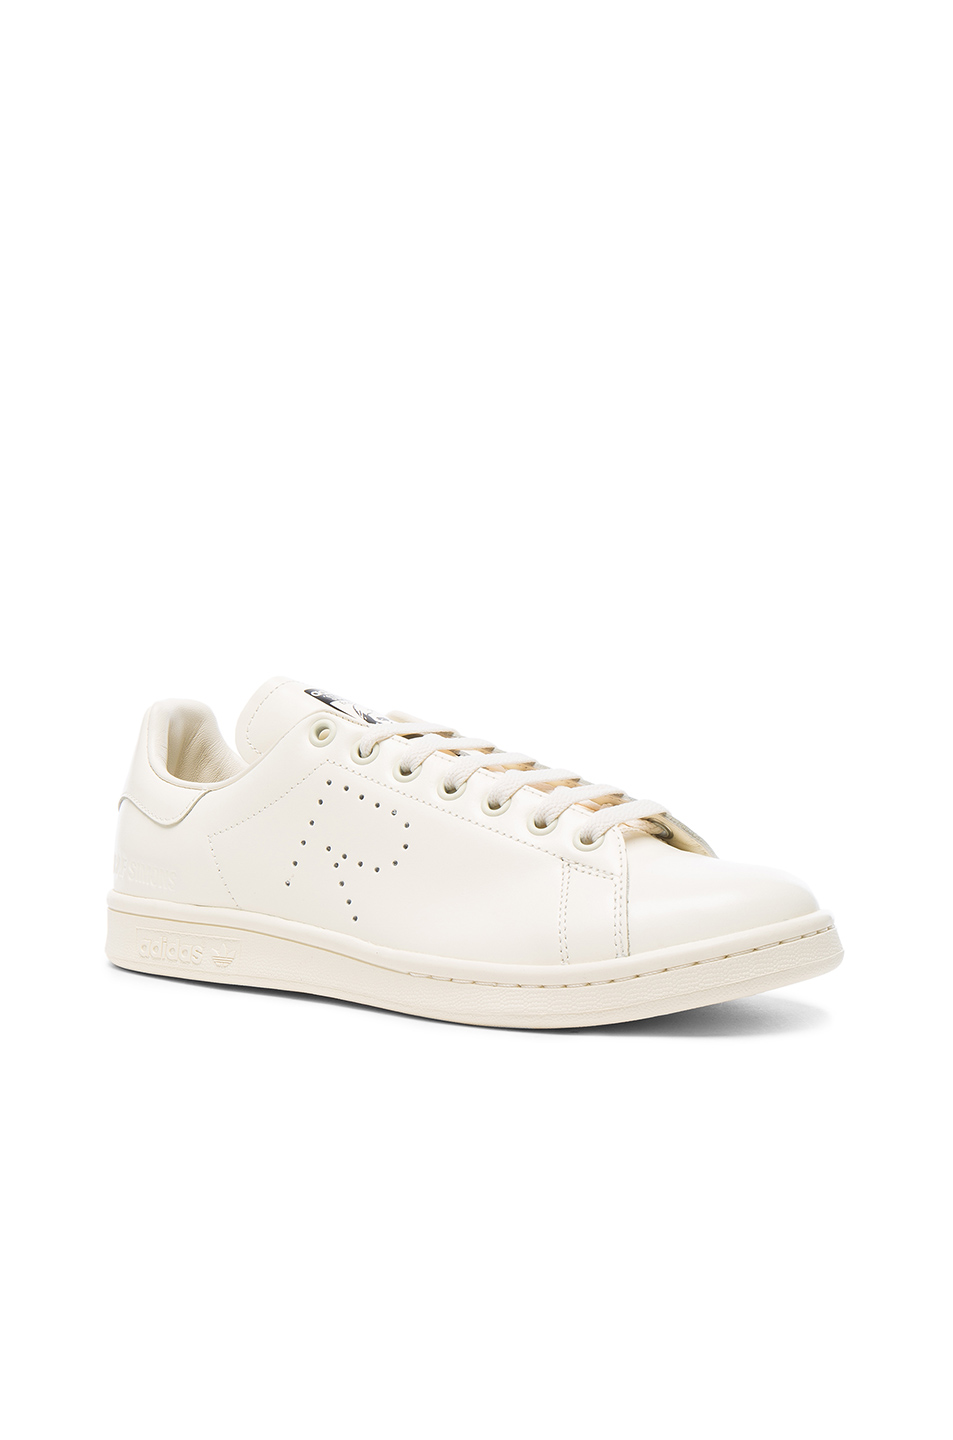 online store c4684 344c1 Raf Simons Off-White Adidas Originals Edition Stan Smith Sneakers In Cream  White